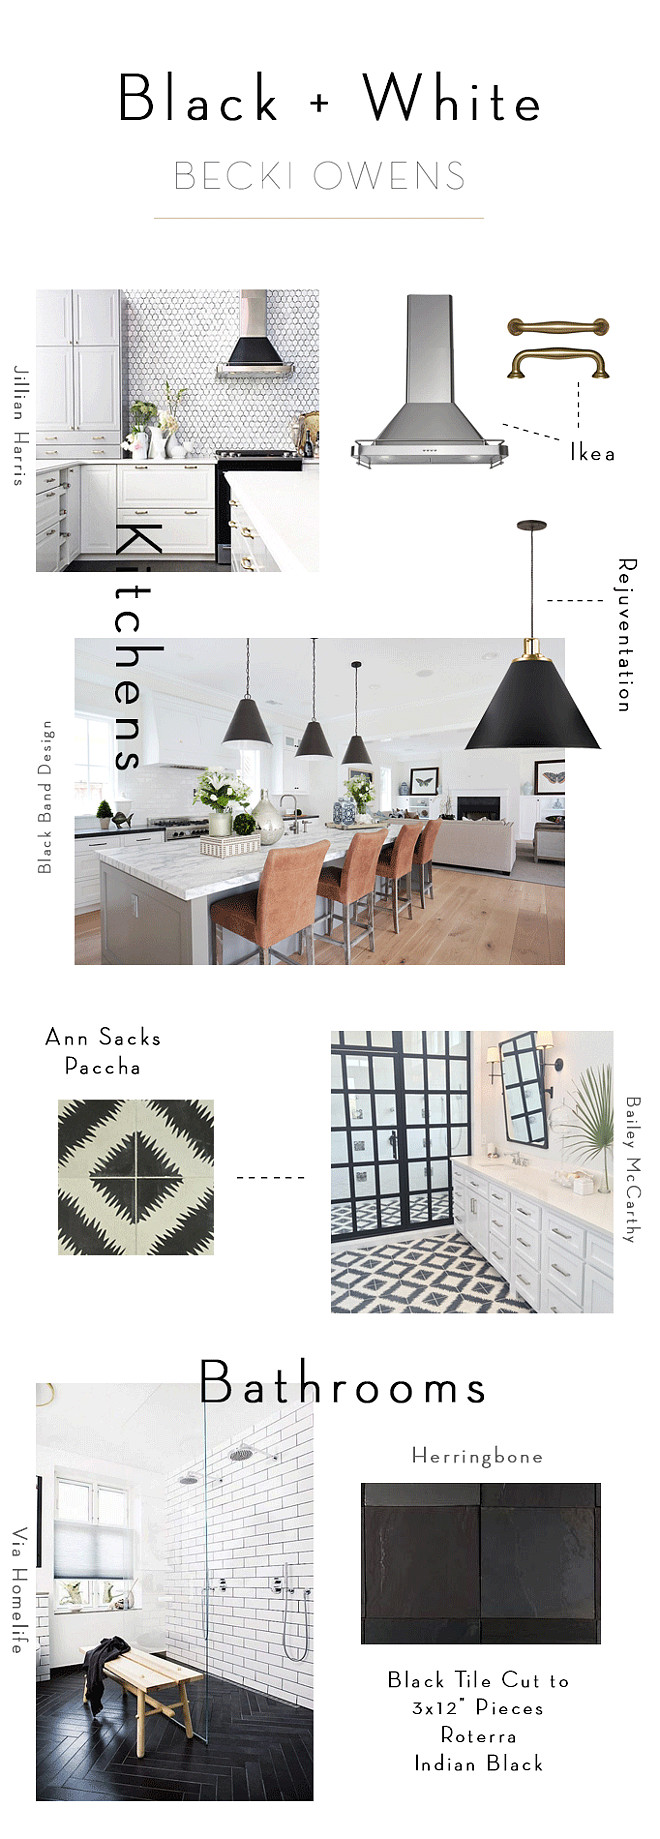 Black and white kitchens and bathroom interiors. How to design black and white interiors. Black and white interior guide. Becki Owens.